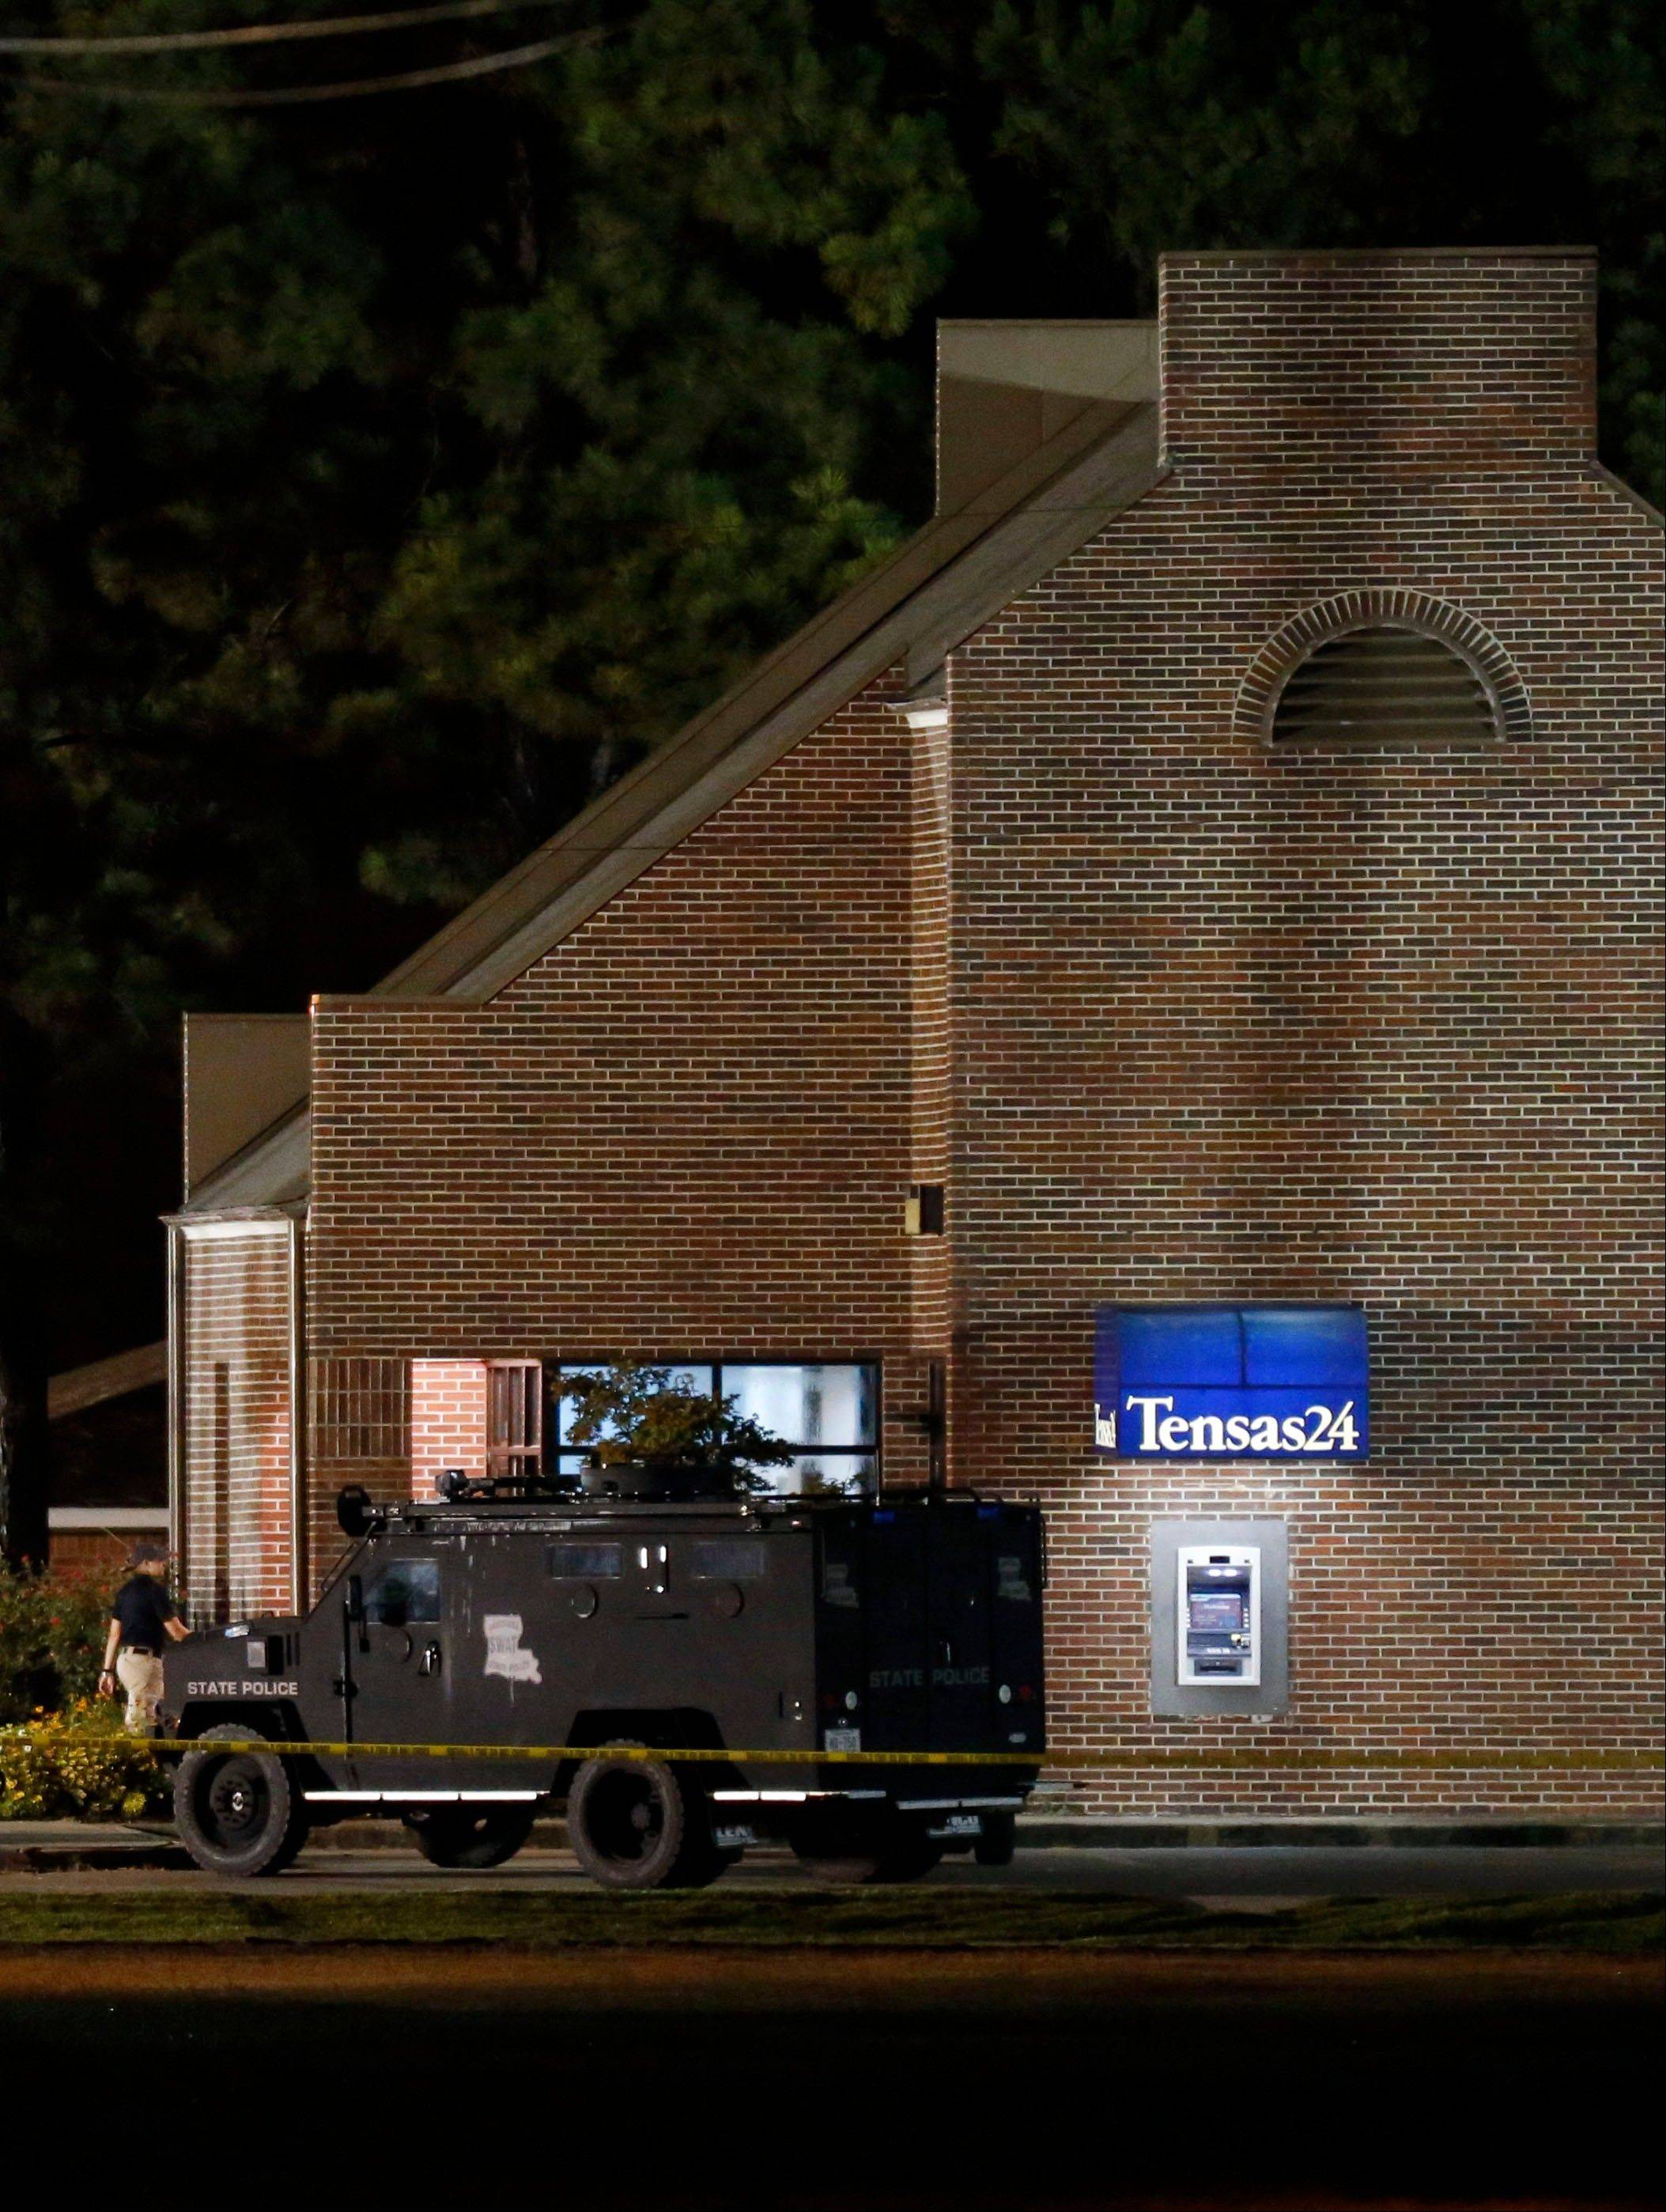 A SWAT vehicle sits outside the Tensas State Bank in St. Joseph, La., as investigators work throughout the early morning hours Wednesday, Aug. 14, 2013, in the bank where a gunman took three people hostage Tuesday. The suspect, identified as 20-year-old Fuaed Abdo Ahmed later released one hostage but around midnight shot the two remaining hostages, killing one of them before being shot and killed by police authorities said.